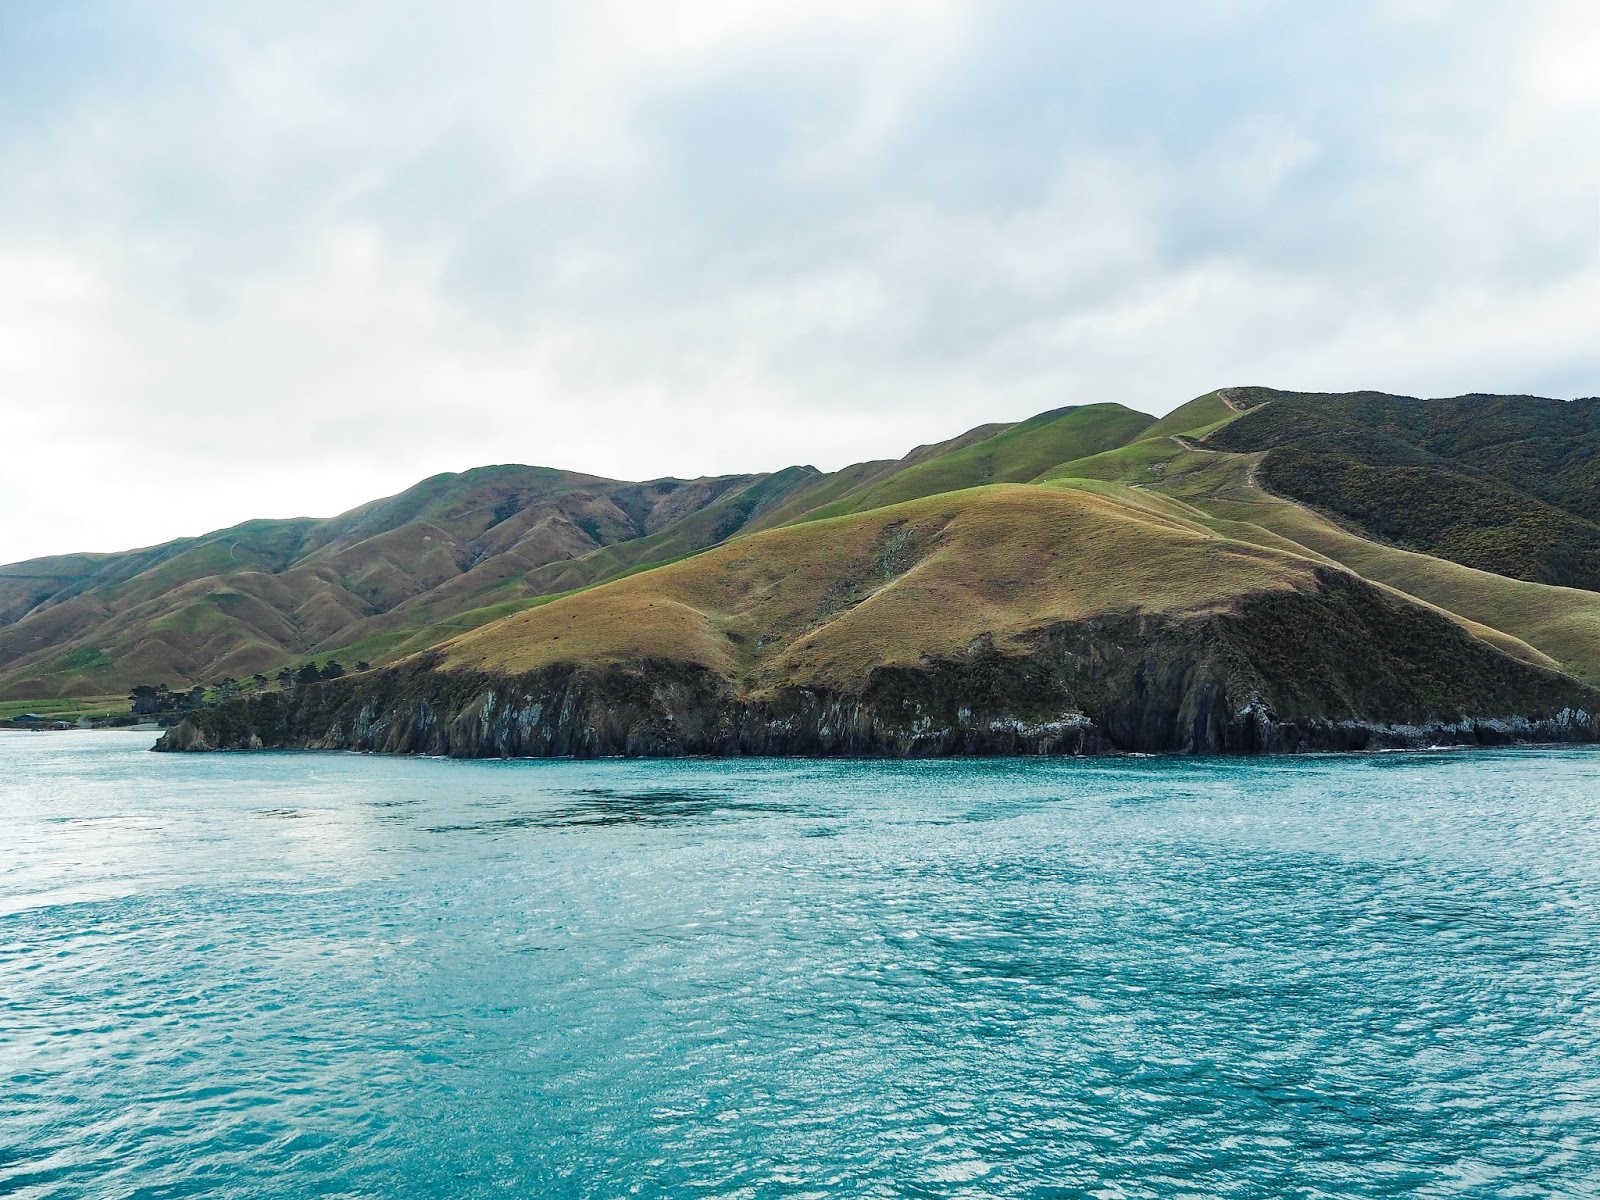 View of Marlborough Sounds from Cook Strait ferry, New Zealand